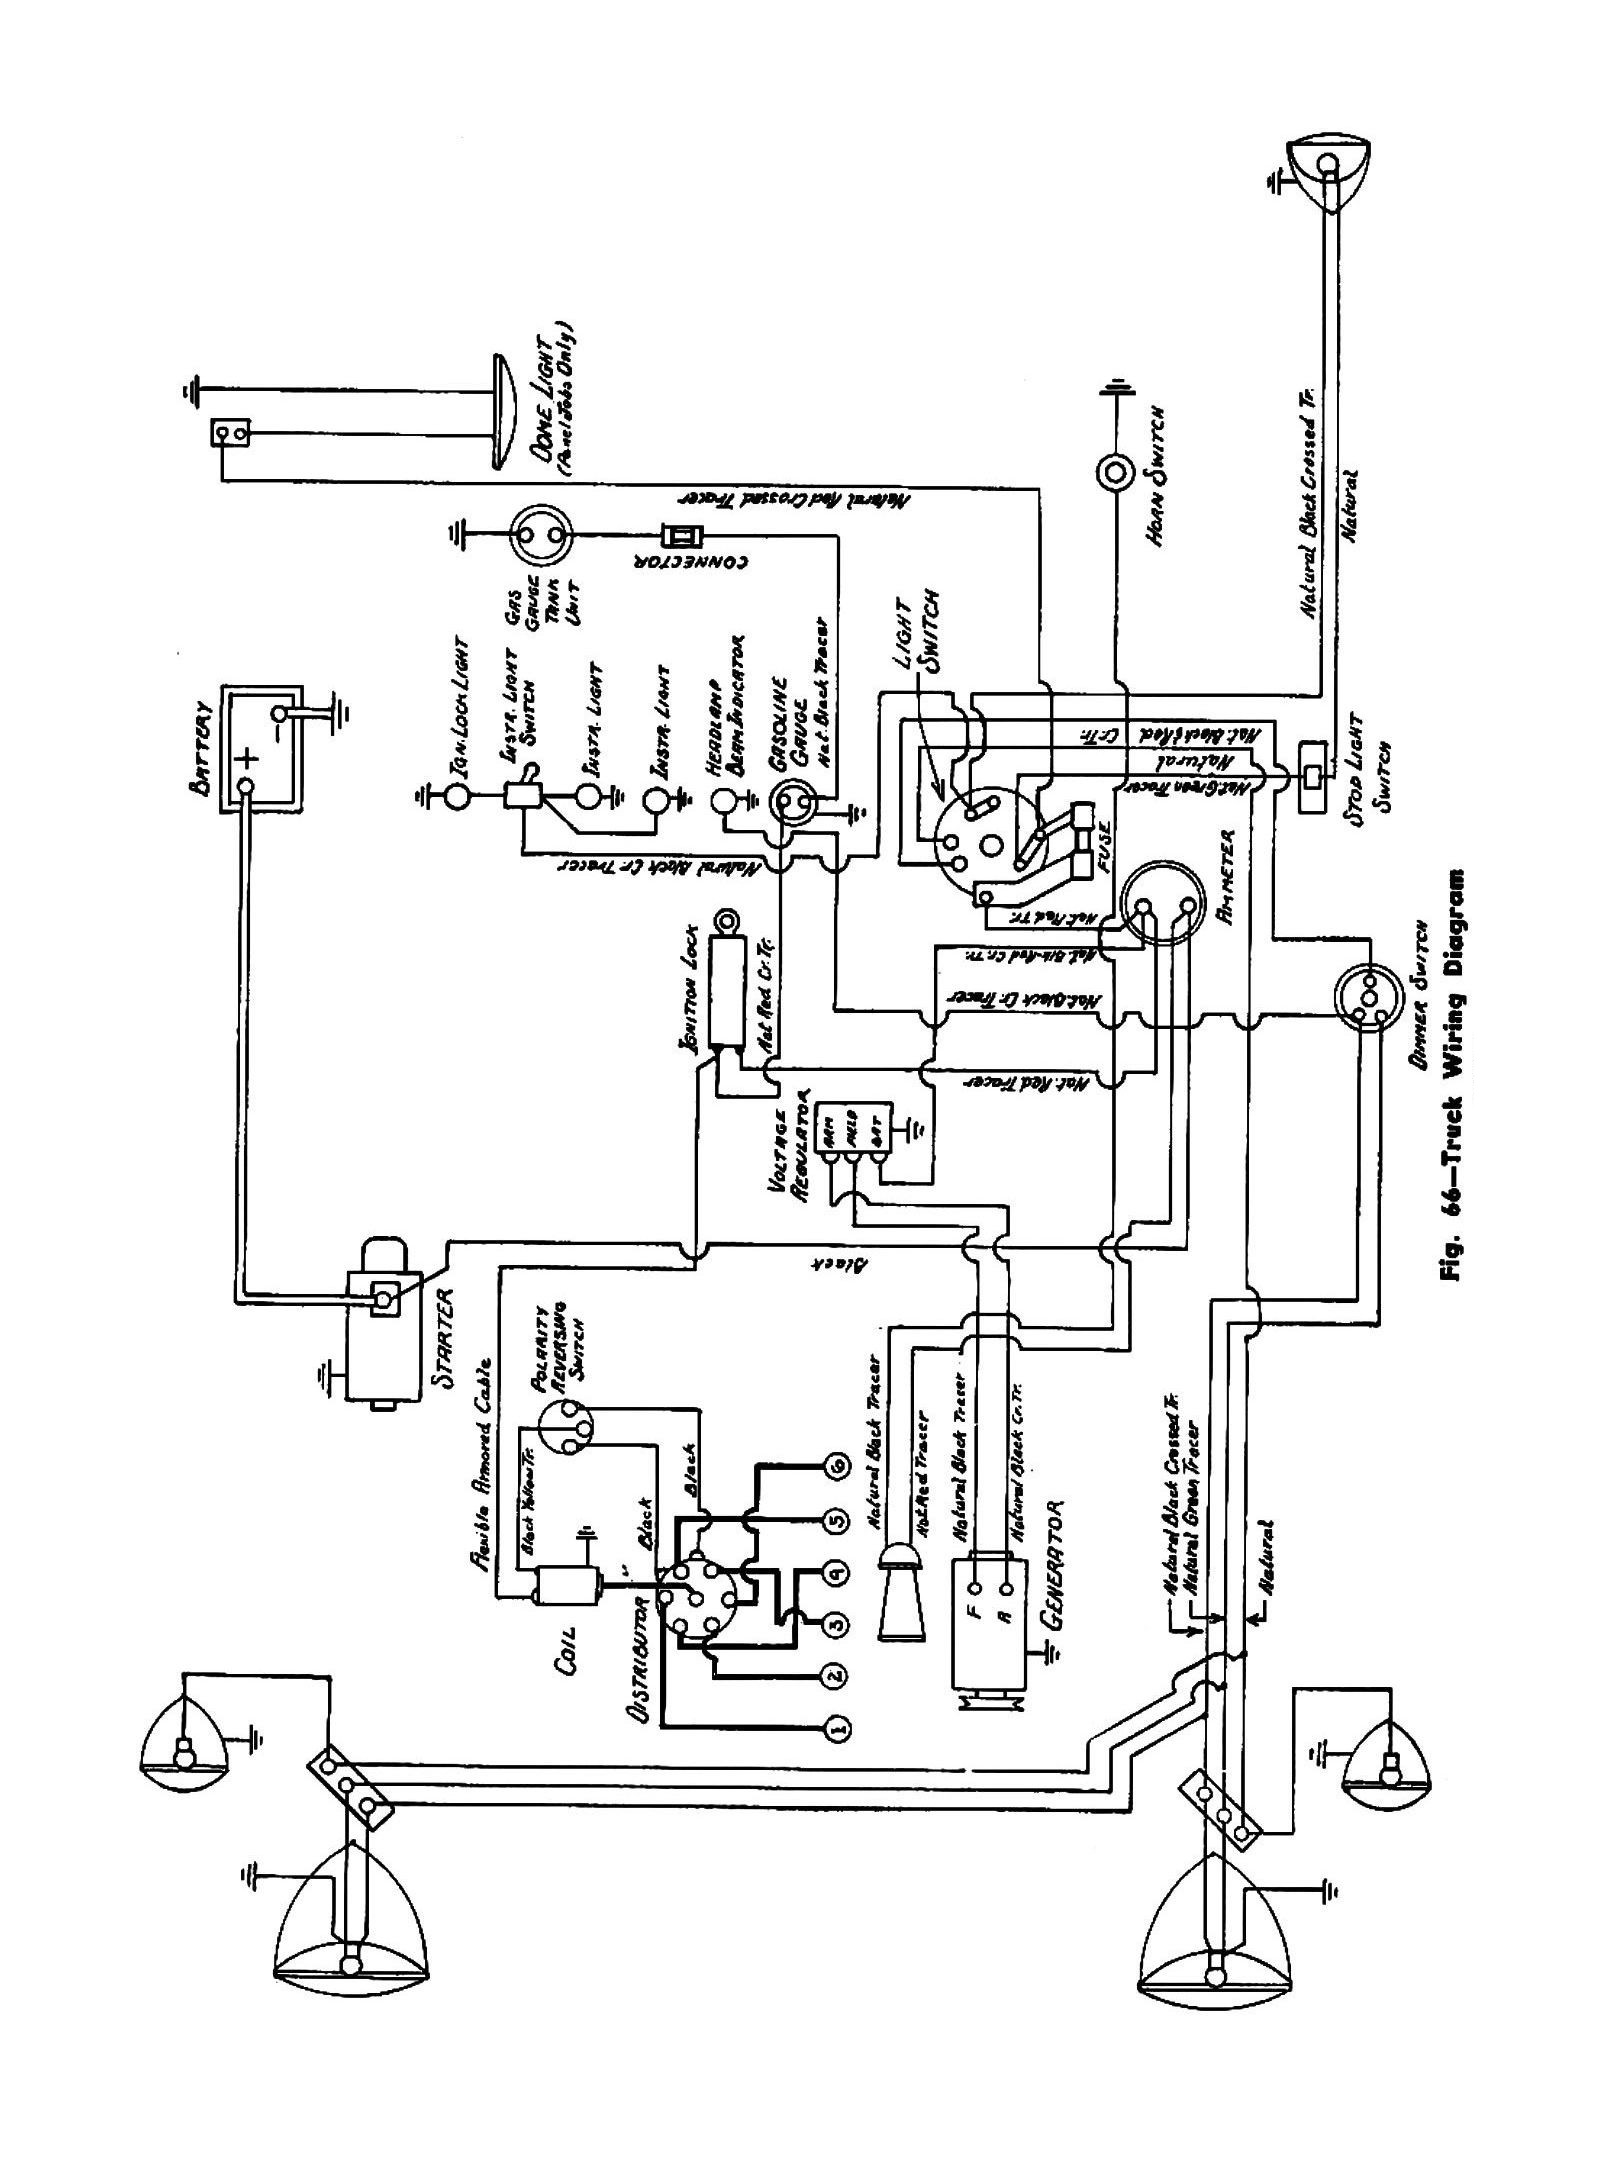 45truck chevy wiring diagrams chevy truck wiring harness diagram at webbmarketing.co